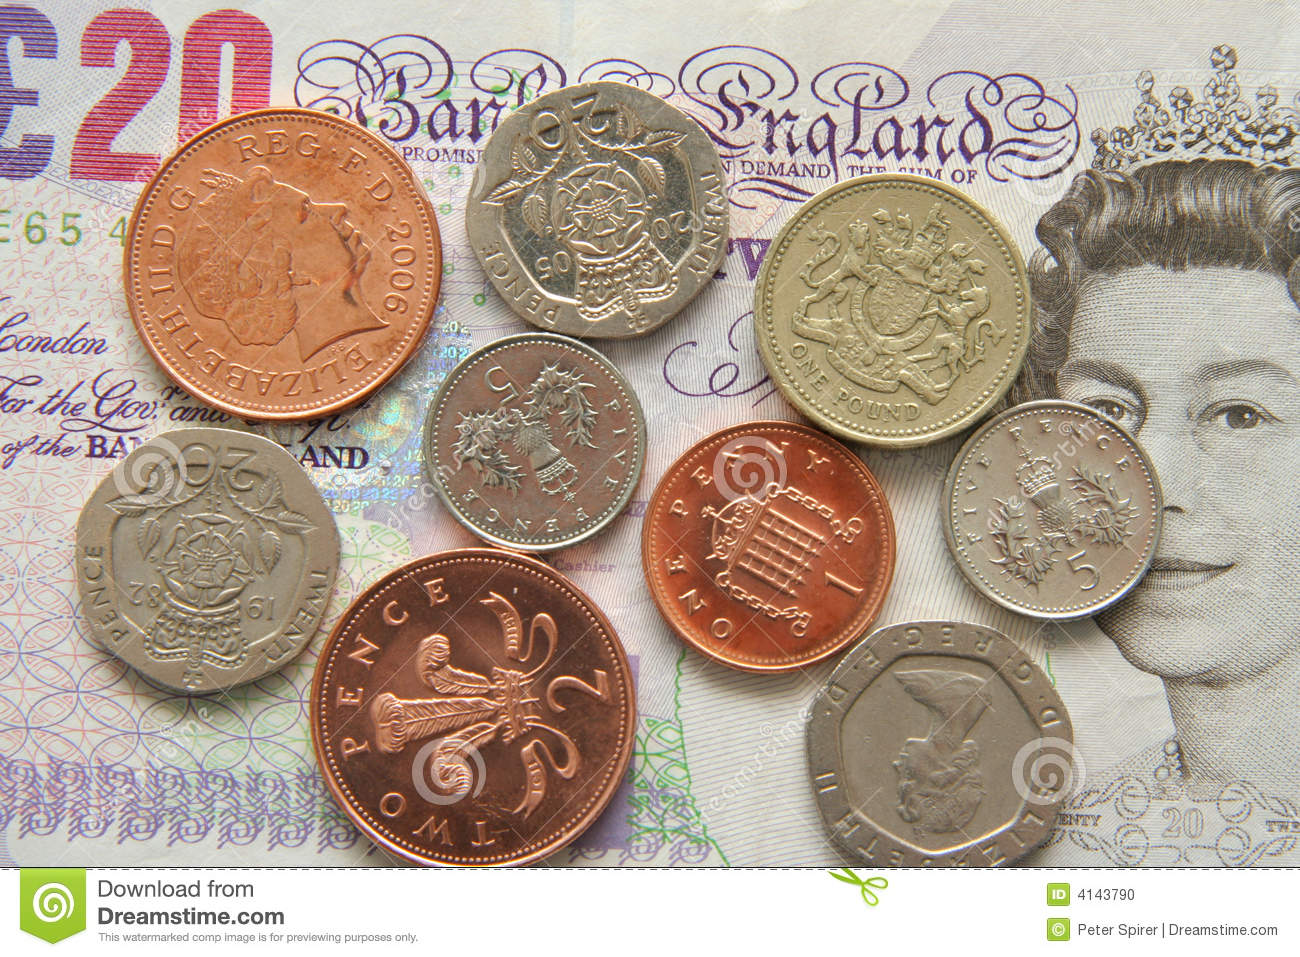 selection of modern British coins along with a 20 pound note.